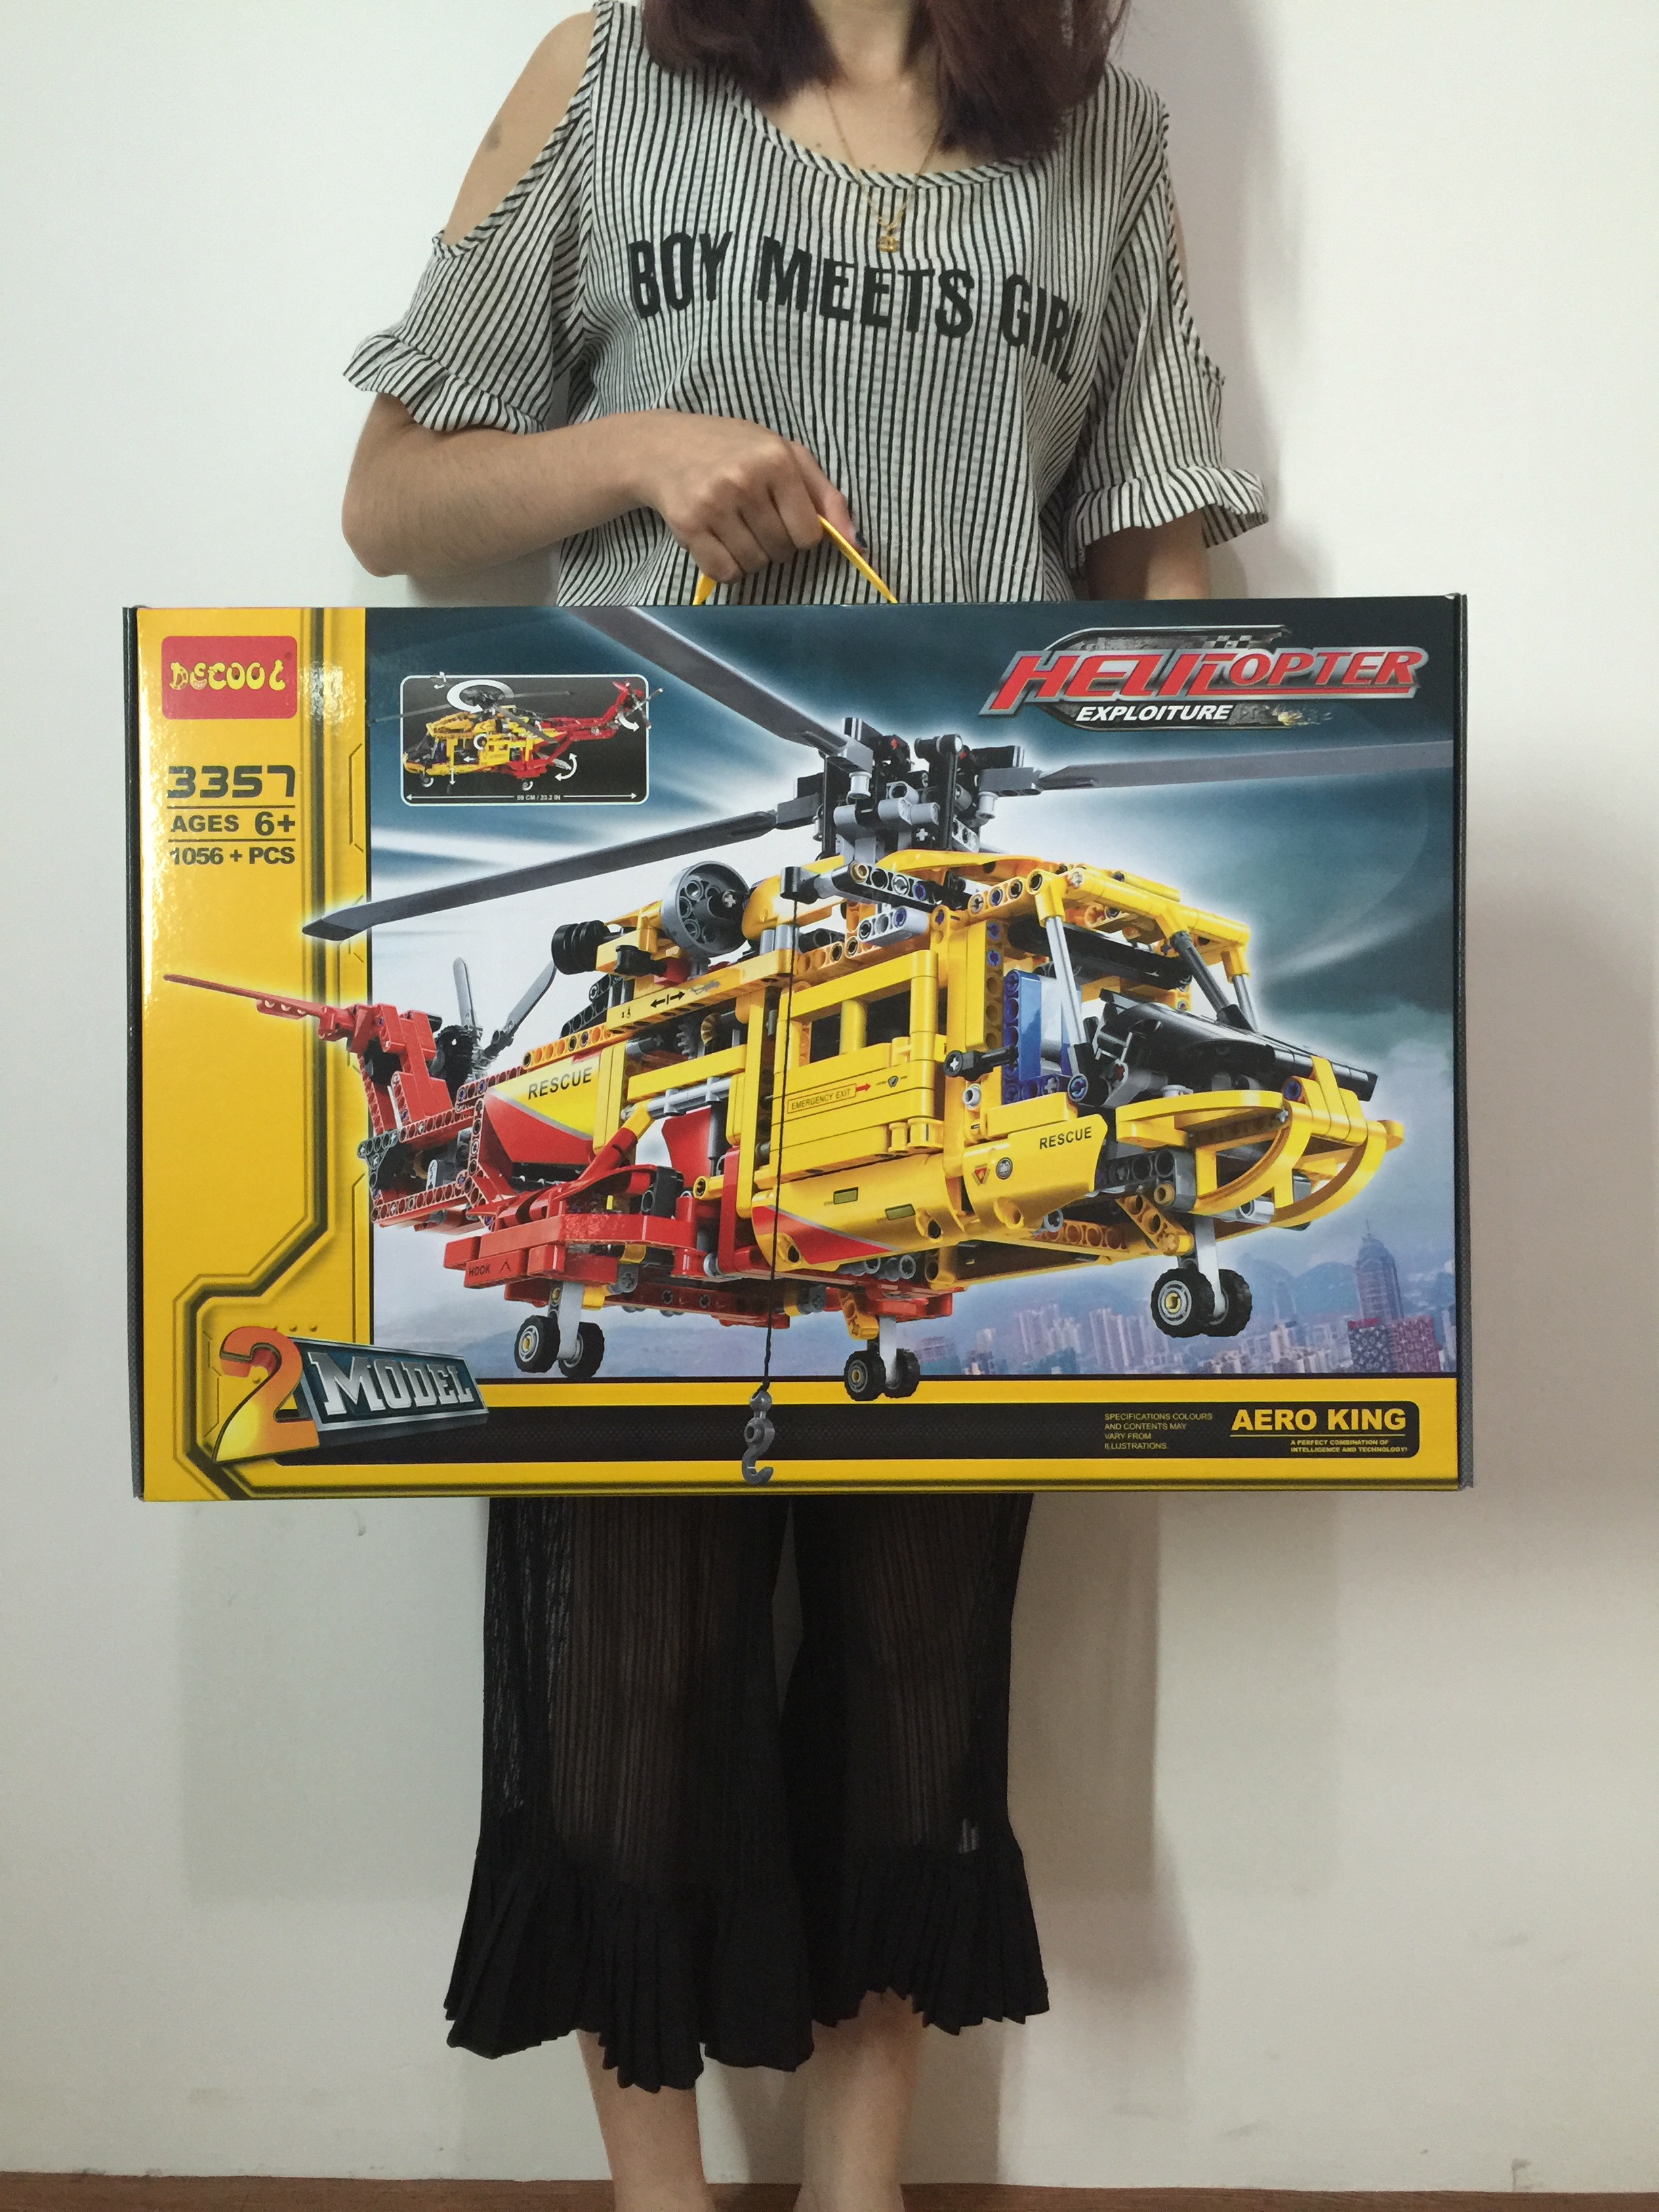 DECOOL TECHNIC 3357 Lepinly Technic Military City WW2 Rescue Helicopter Plane Building Blocks Bricks Toys For Children Gift 9396